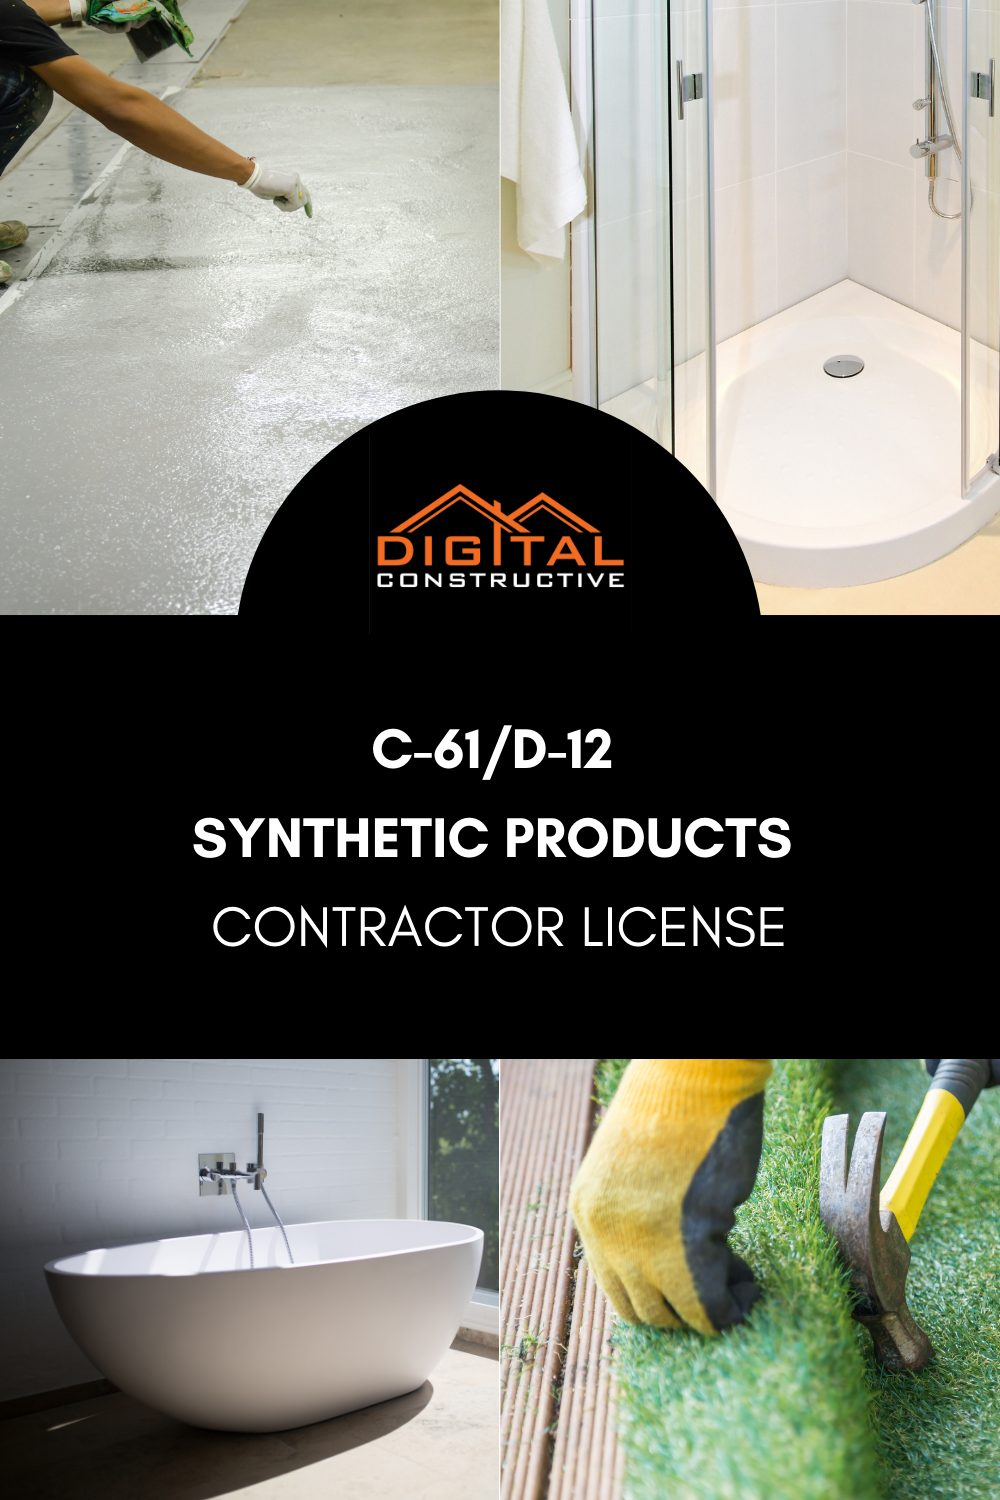 what can you do with the C-61 contractors license for synthetic products in California